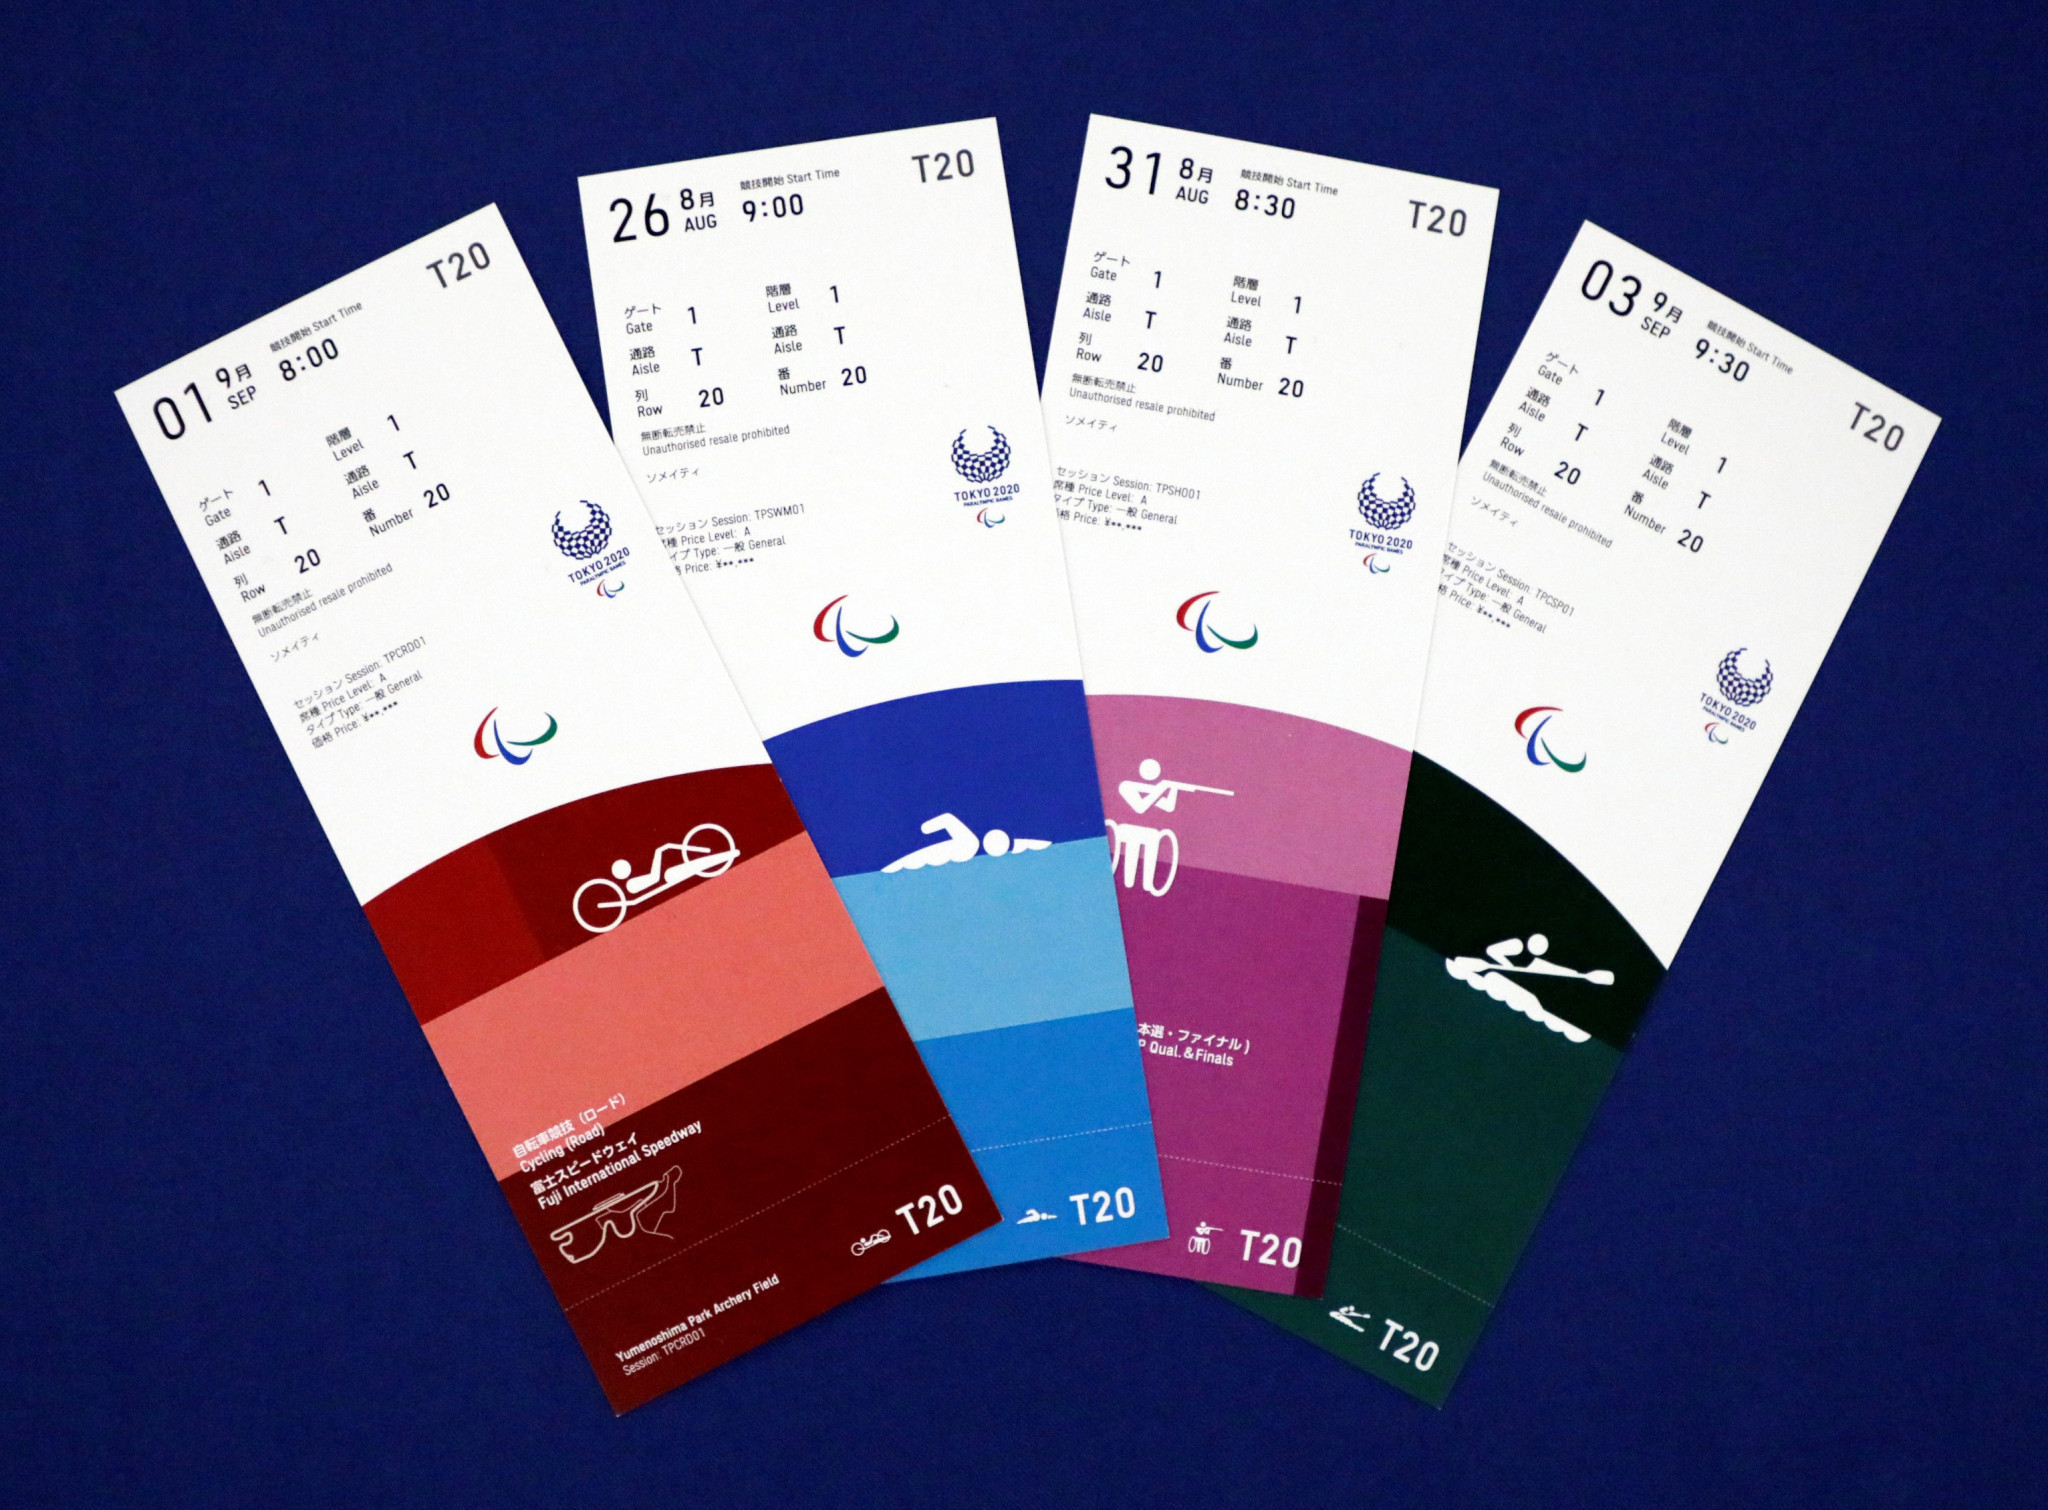 Second Tokyo 2020 Paralympics ticket lottery closes in Japan